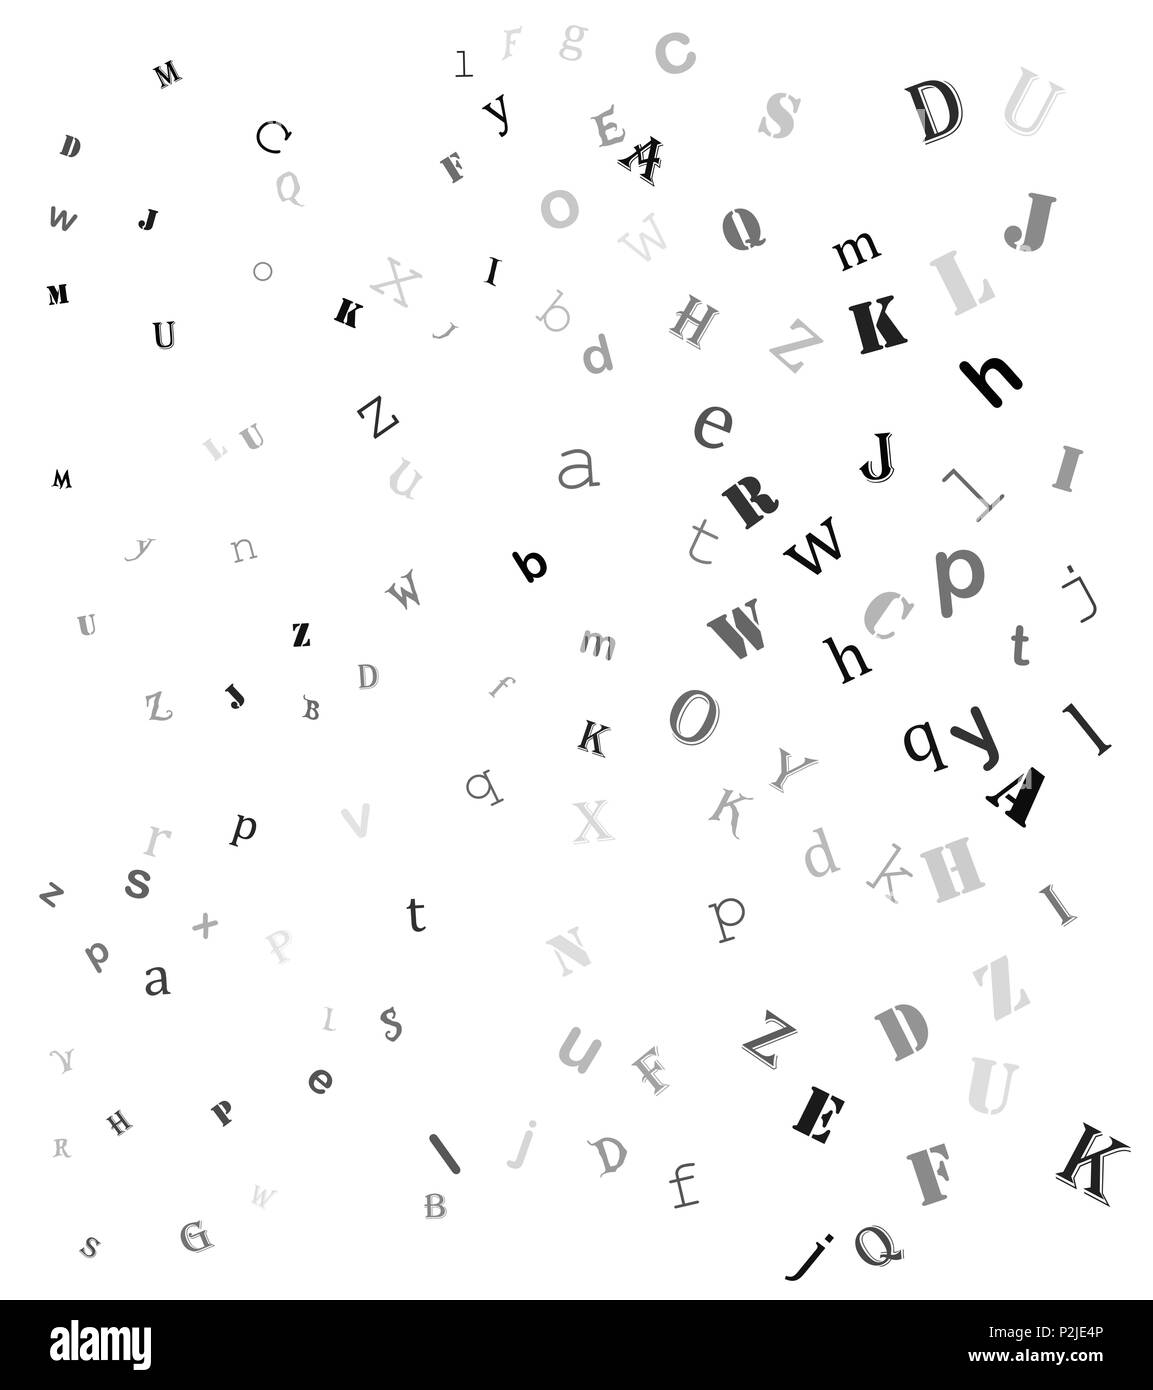 Alphabet Letters Black And White Stock Photos Amp Images Alamy